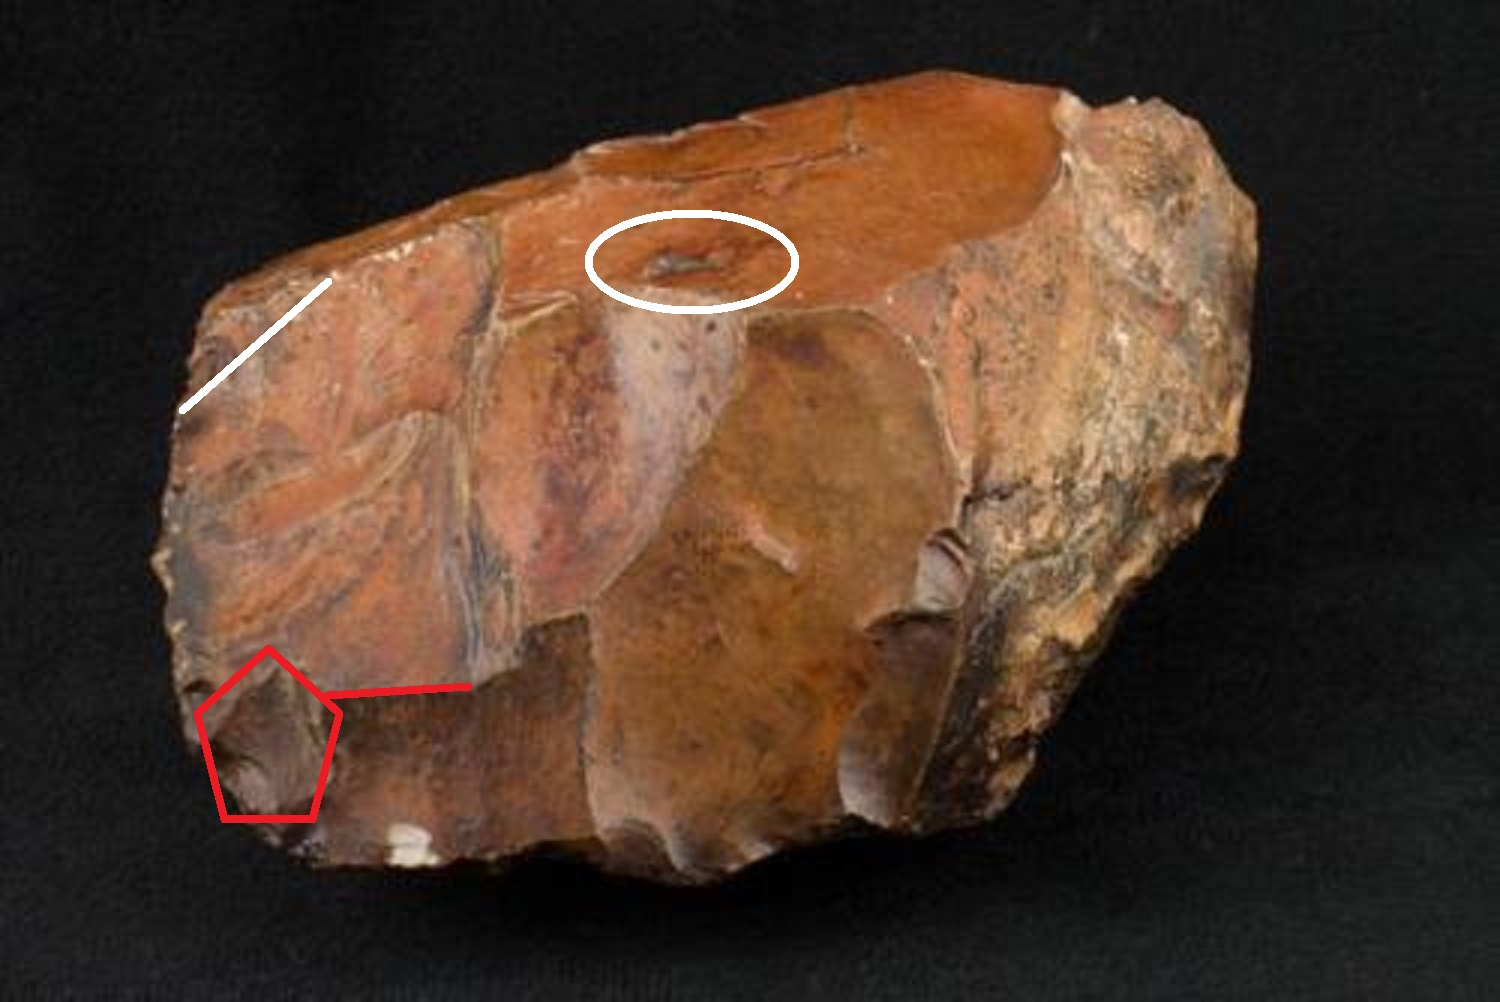 Archaeology of portable rock art polymorphic symbolism in an when i saw this photo i recognized the artifact followed a subtle and simple template for a feline head looking left here as seen in many other examples biocorpaavc Images